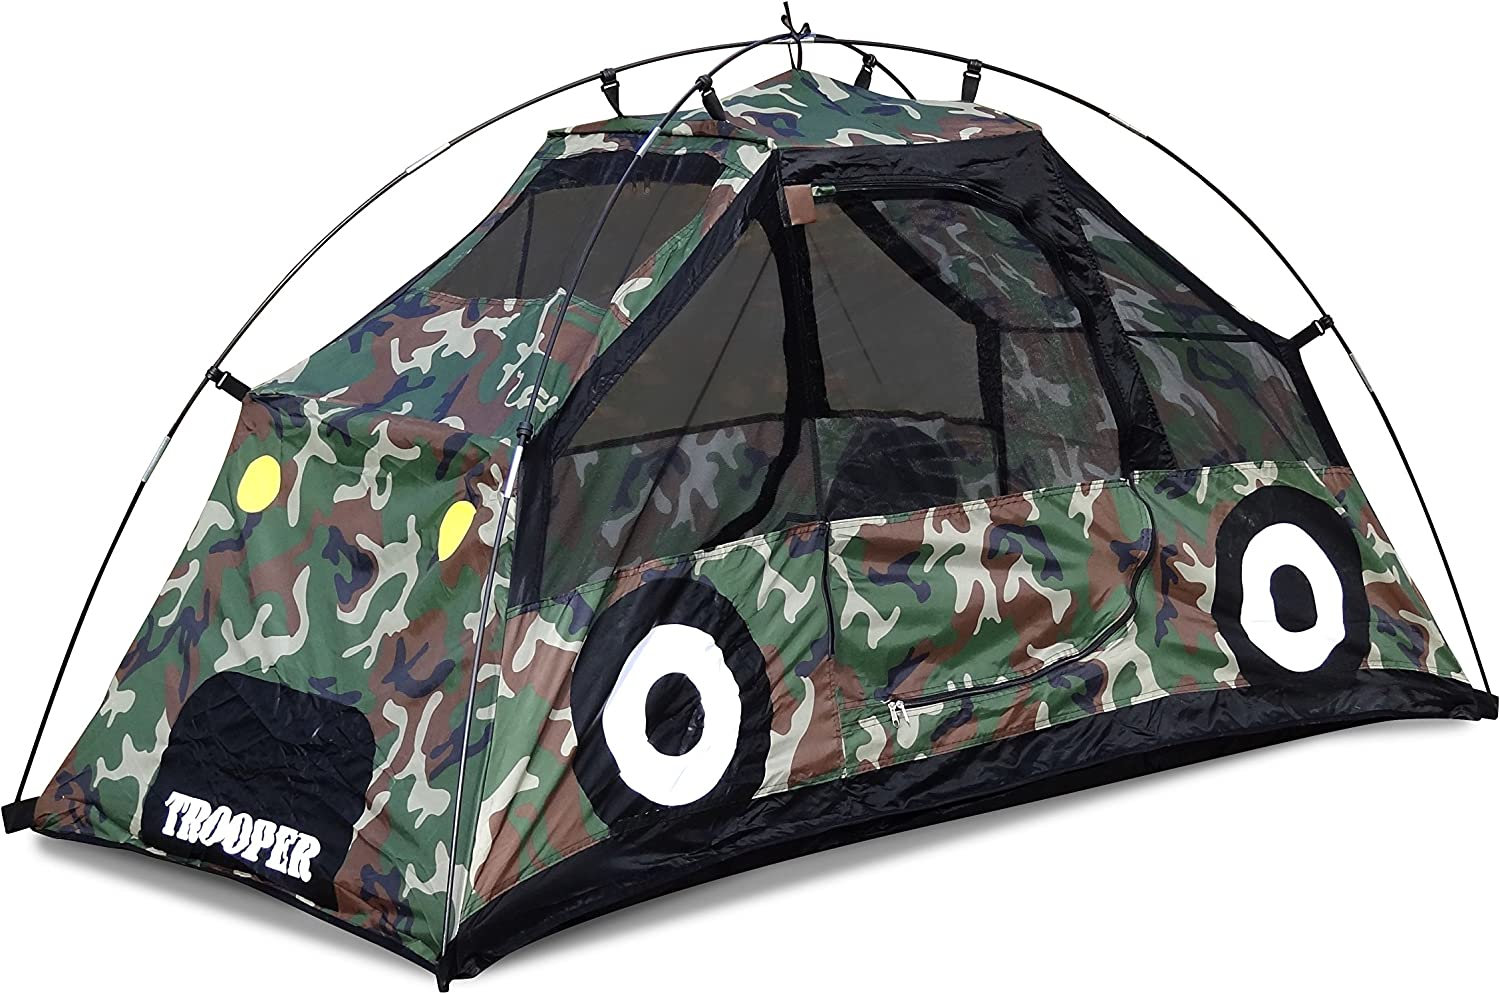 GigaTent Camouflage 2 Doors MUV Polyester Car Playhouse Includes Carry Case